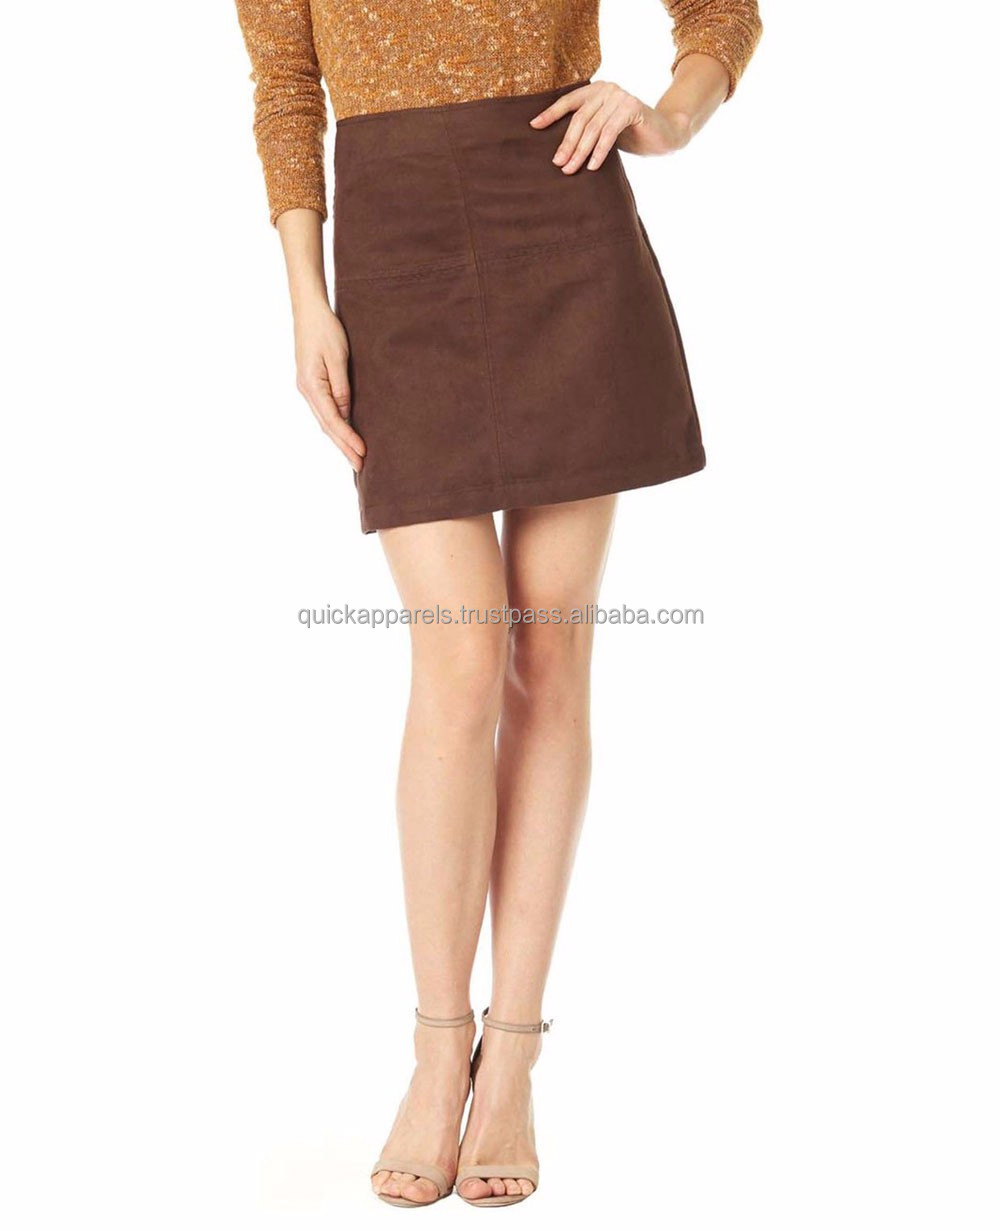 Custom made faux suede skirt pictures of a-line skirt latest design skirts women